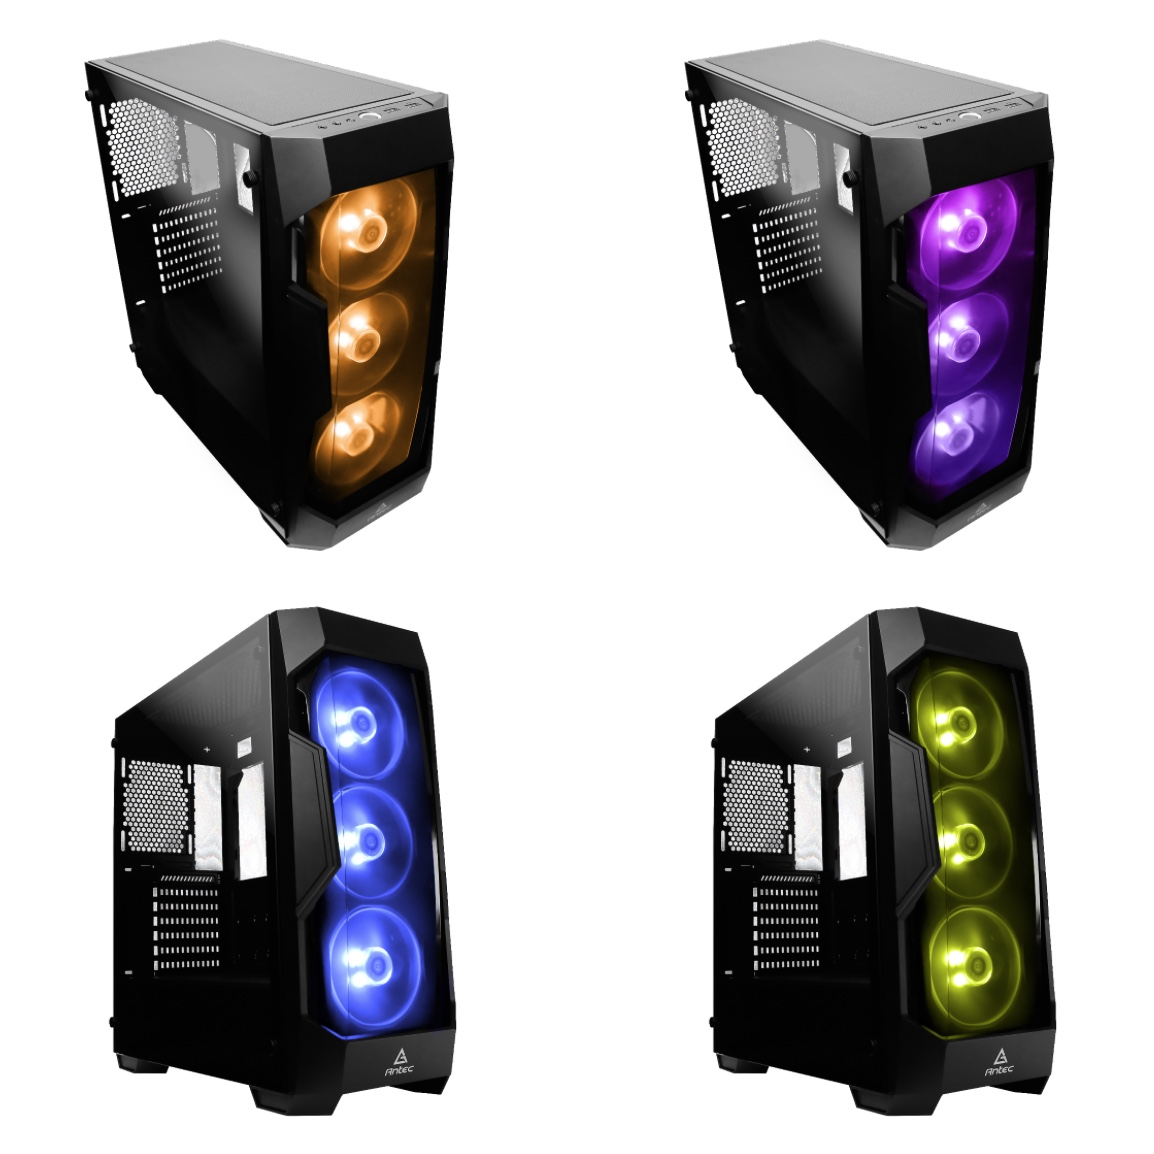 Df500 Rgb Antec Launch Gaming Case With Strong Features